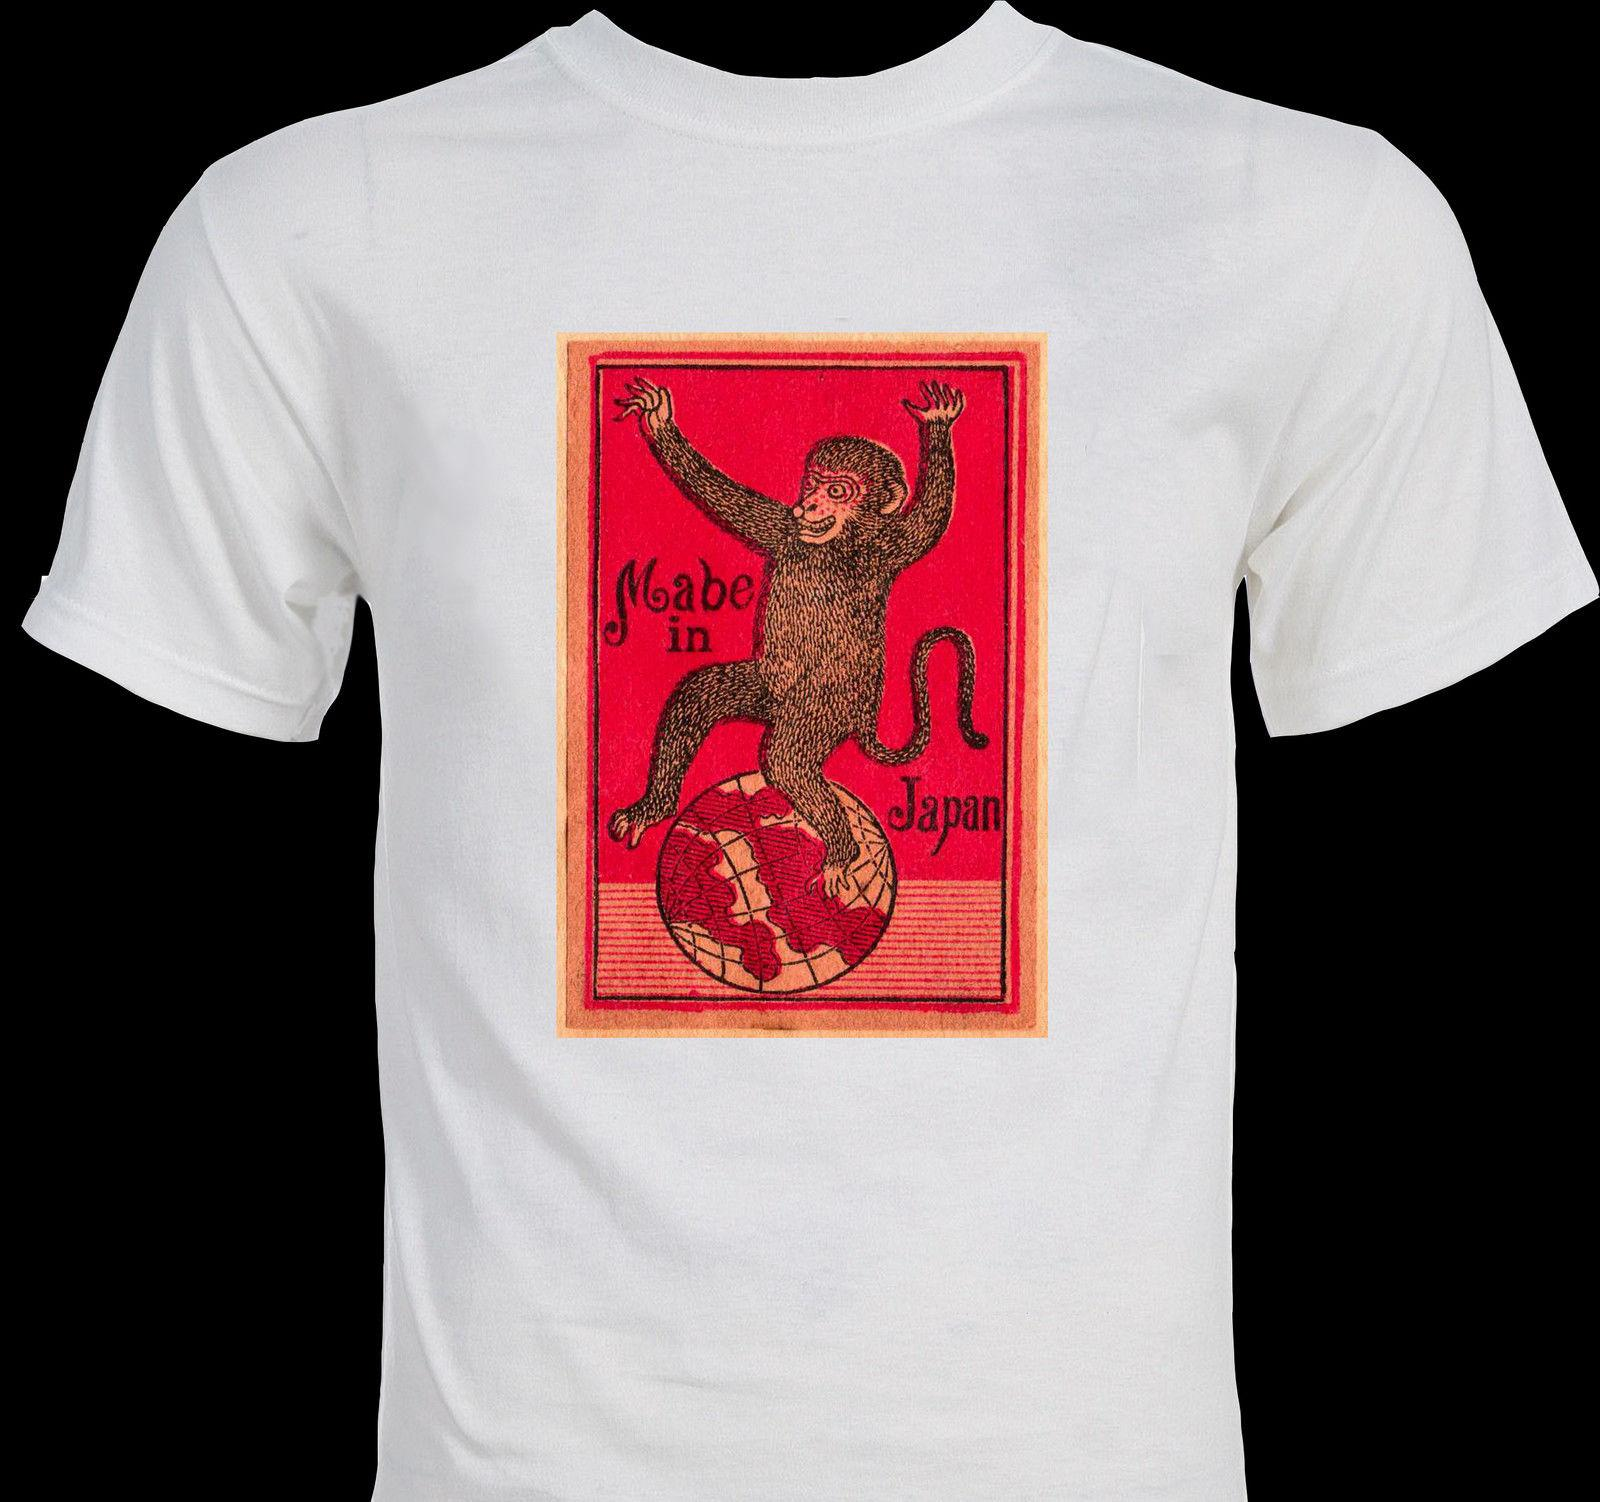 Mabe in Japan Rare 1930's Japanese Cartoon Retro Monkey T-shirt colour jersey Print t shirt